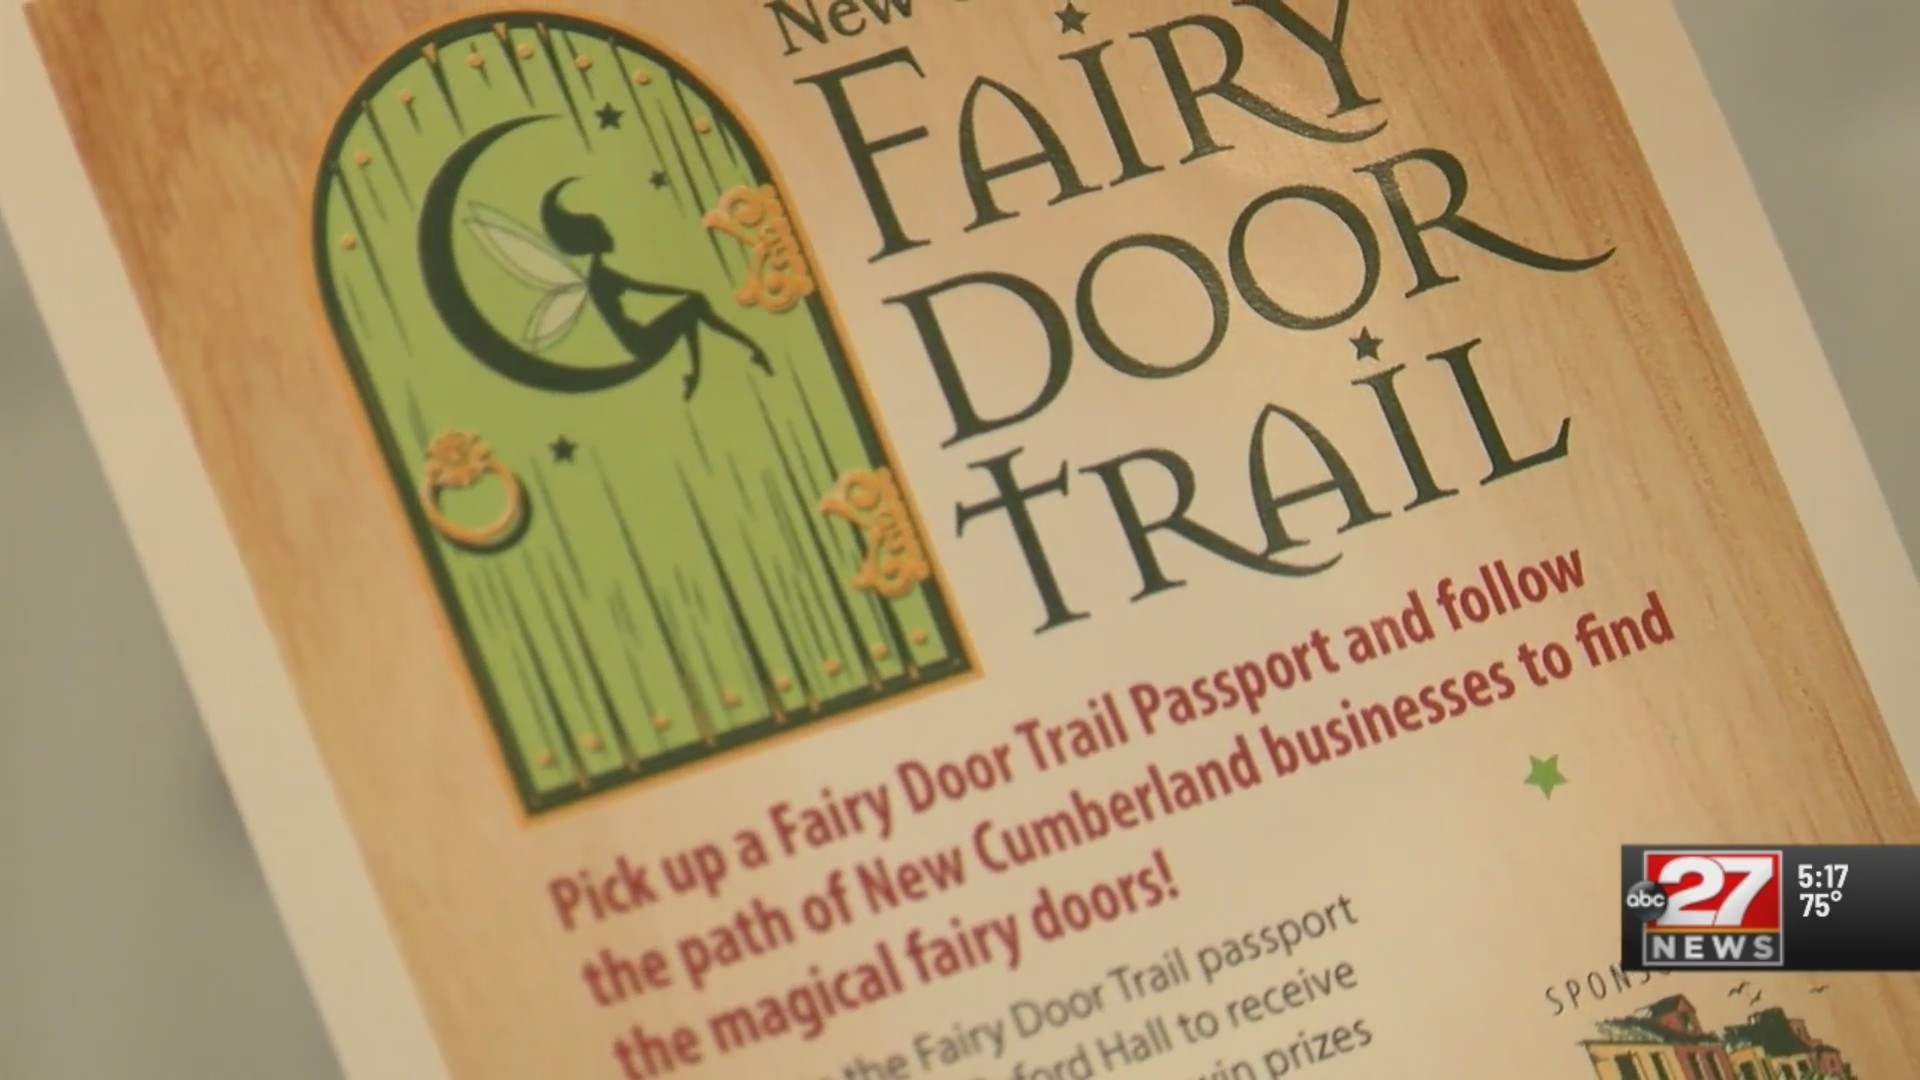 Fairy Door Trail program encourages people to explore community